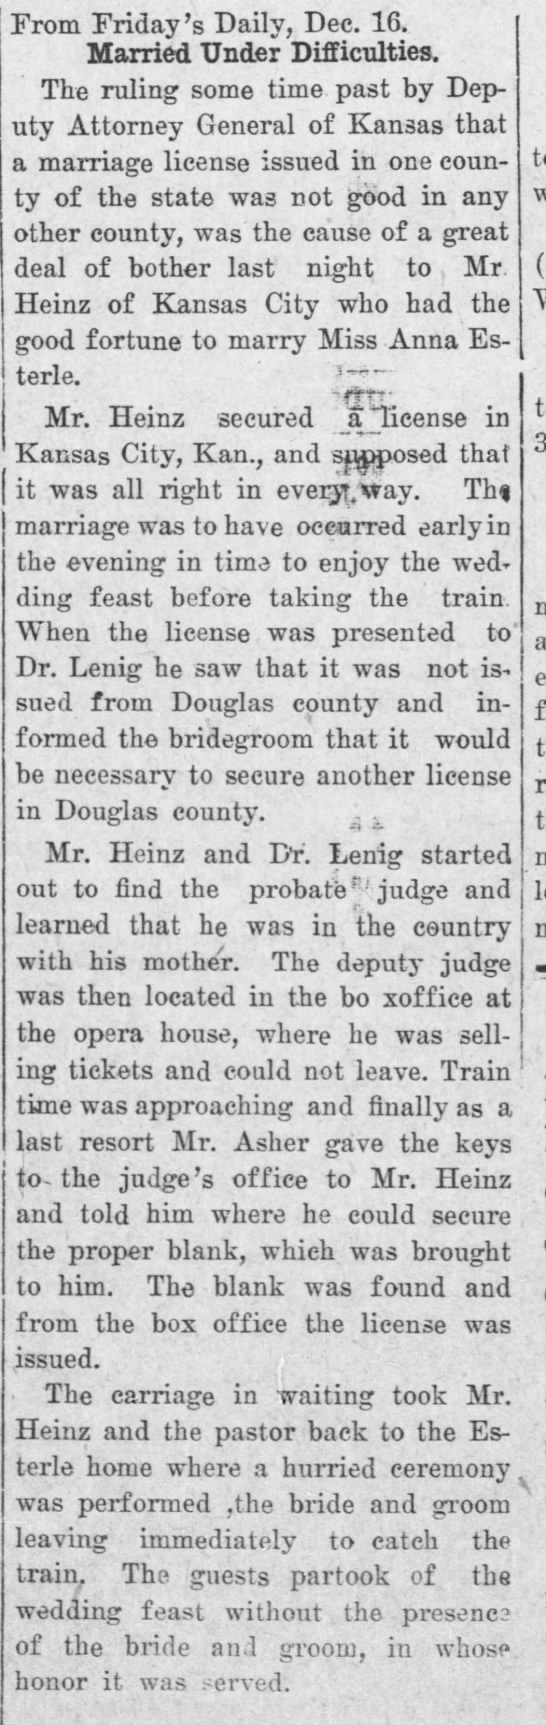 Heinz - Esterle wedding - From Friday's Daily, Dec. 16. Married Under...